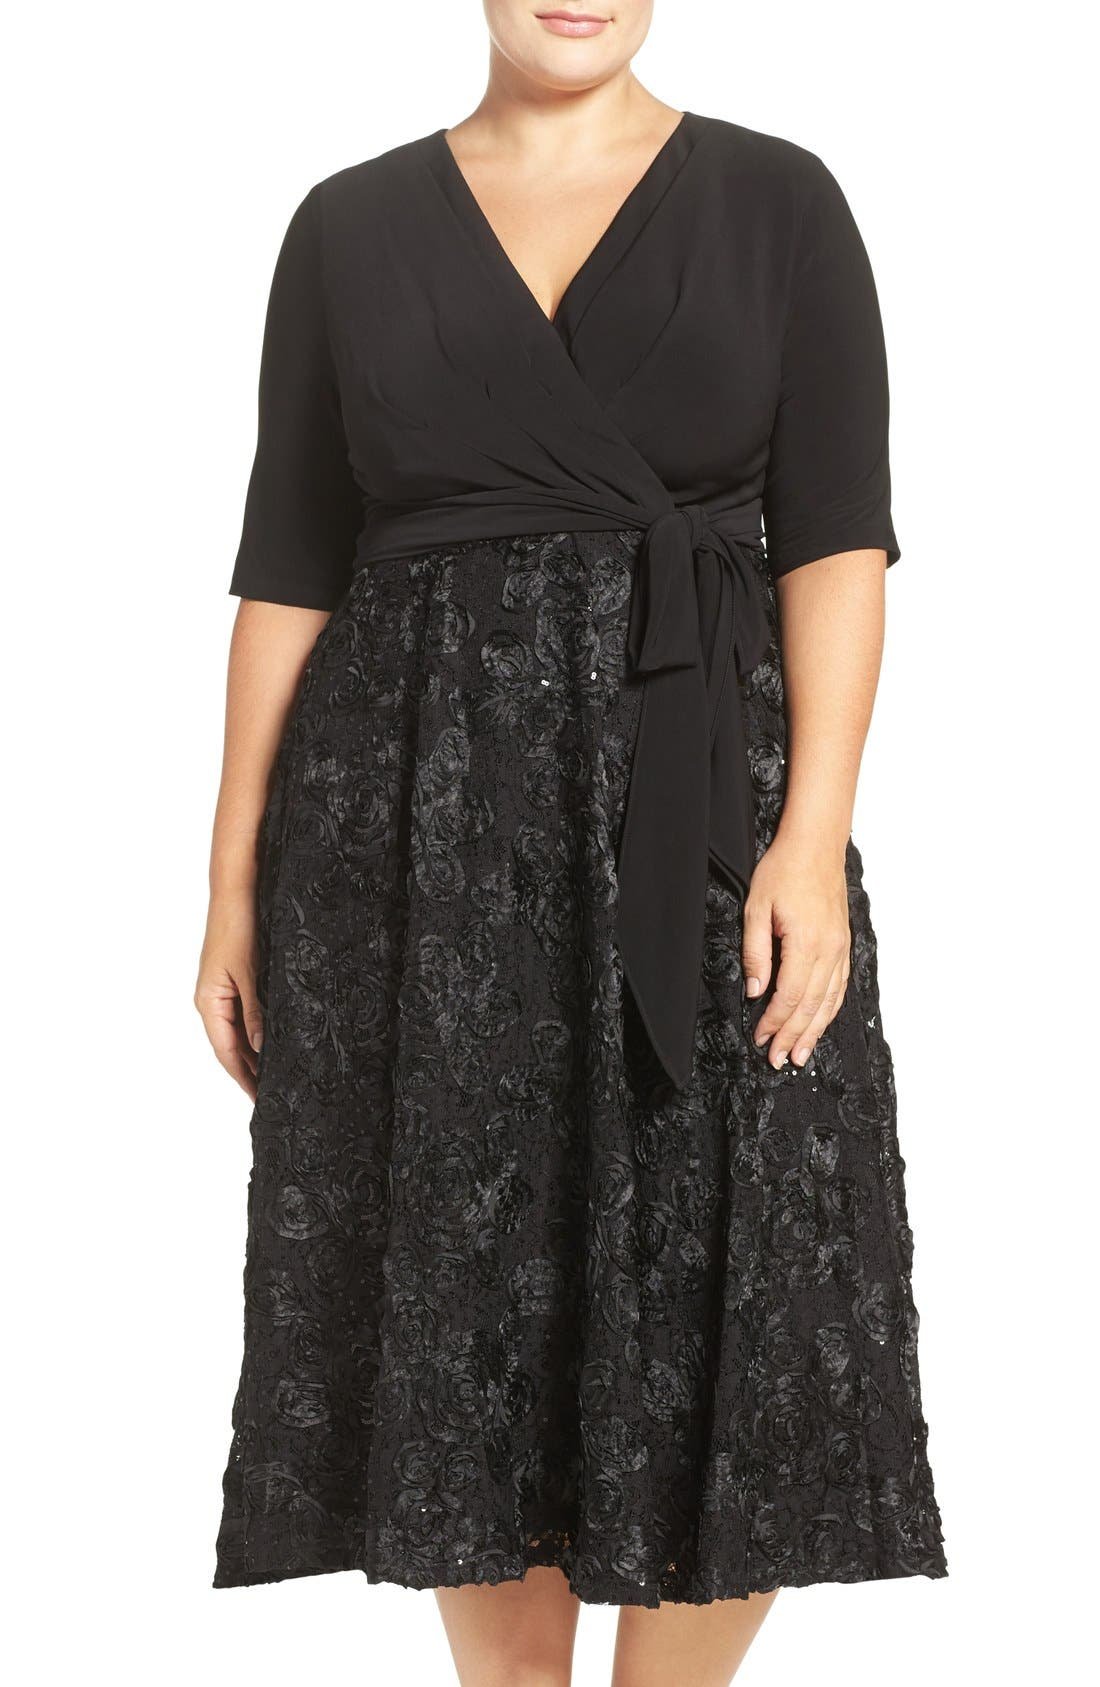 Alternate Image 1 Selected - Alex Evenings Tea Length Jersey & Rosette Lace Dress (Plus Size)